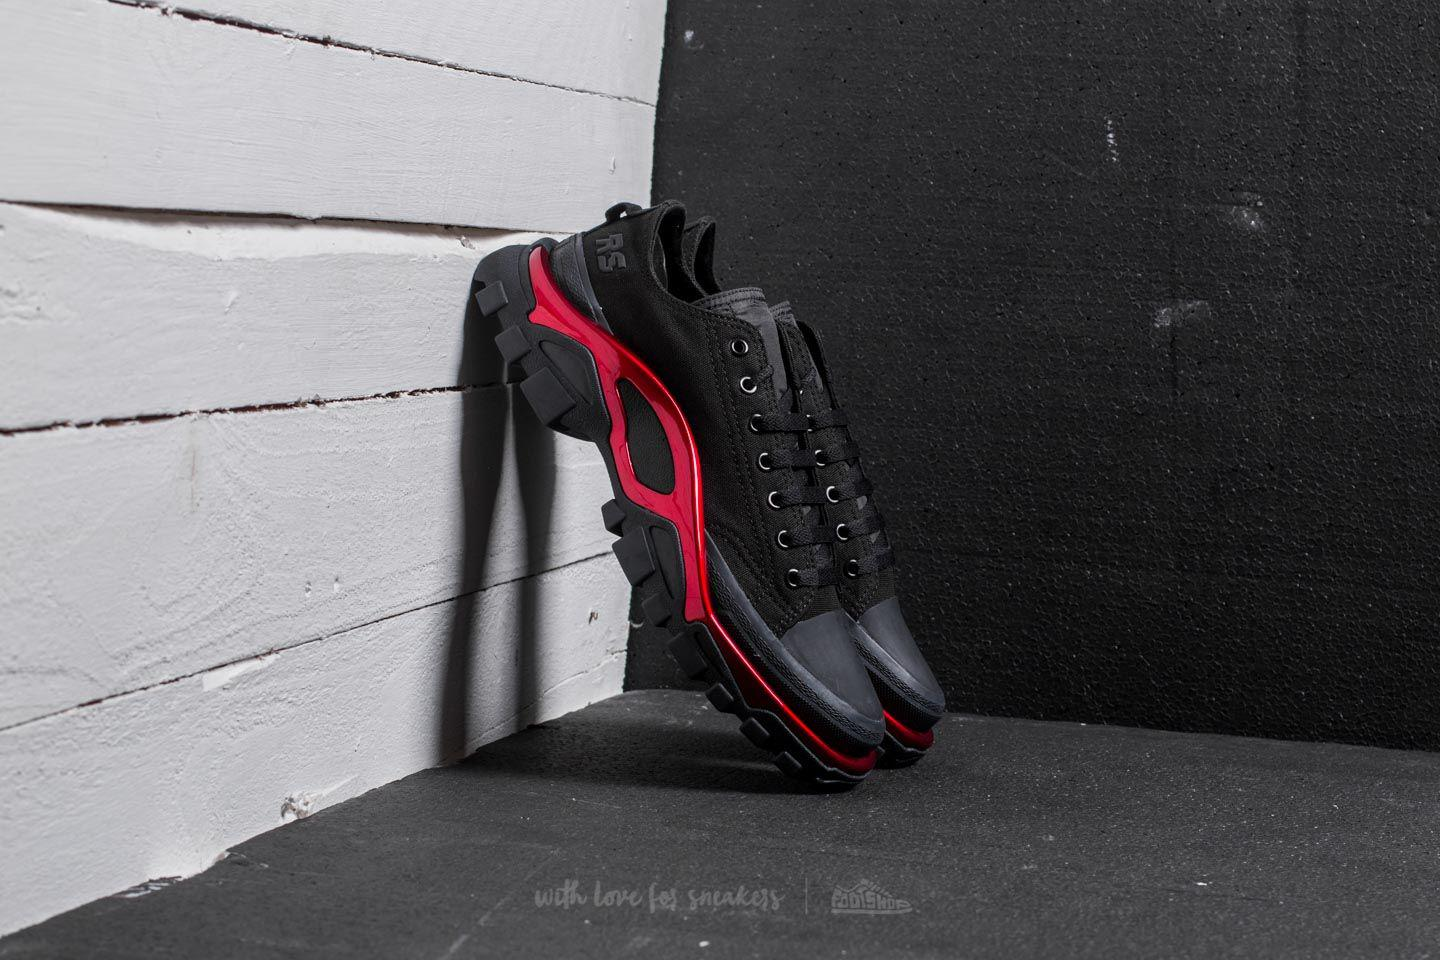 Lyst Footshop Raf Simons Nuove / Adidas X Nucleo Nero / Nuove Scarlet Runner ed44a7